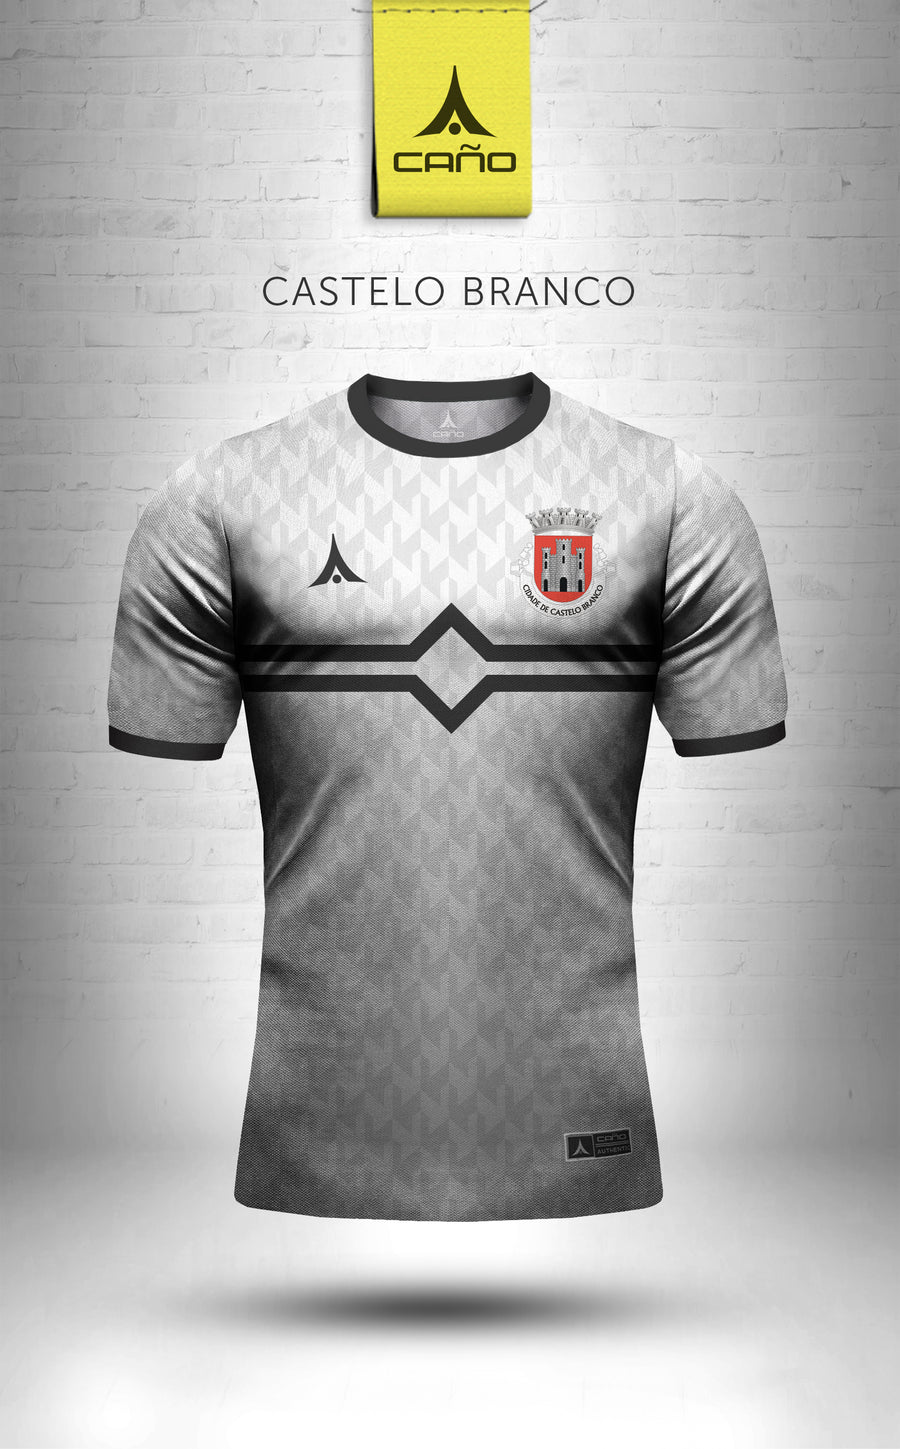 Castelo Branco in white/black